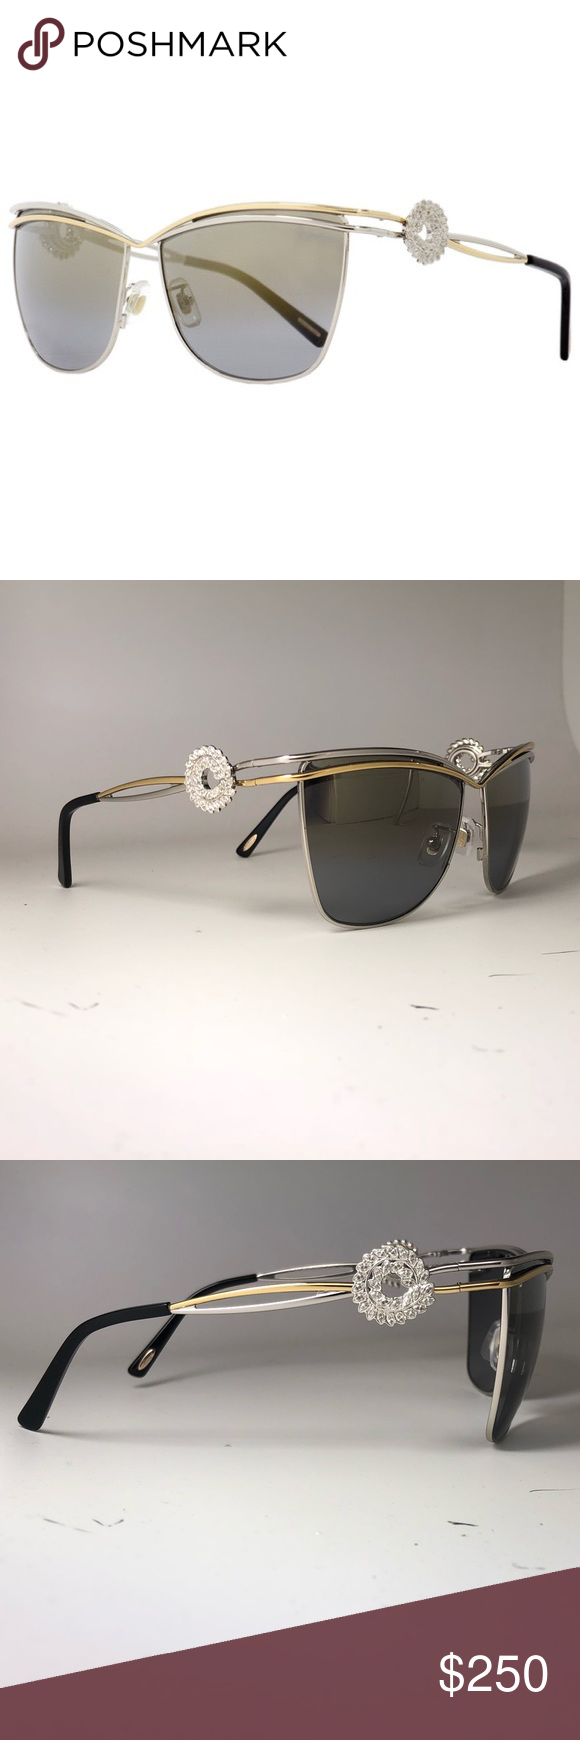 59a1810da8c7 Black Friday sale! Perfect for Christmas gift or present for any other  occasion! Cyber Monday sale! Chopard Accessories Sunglasses